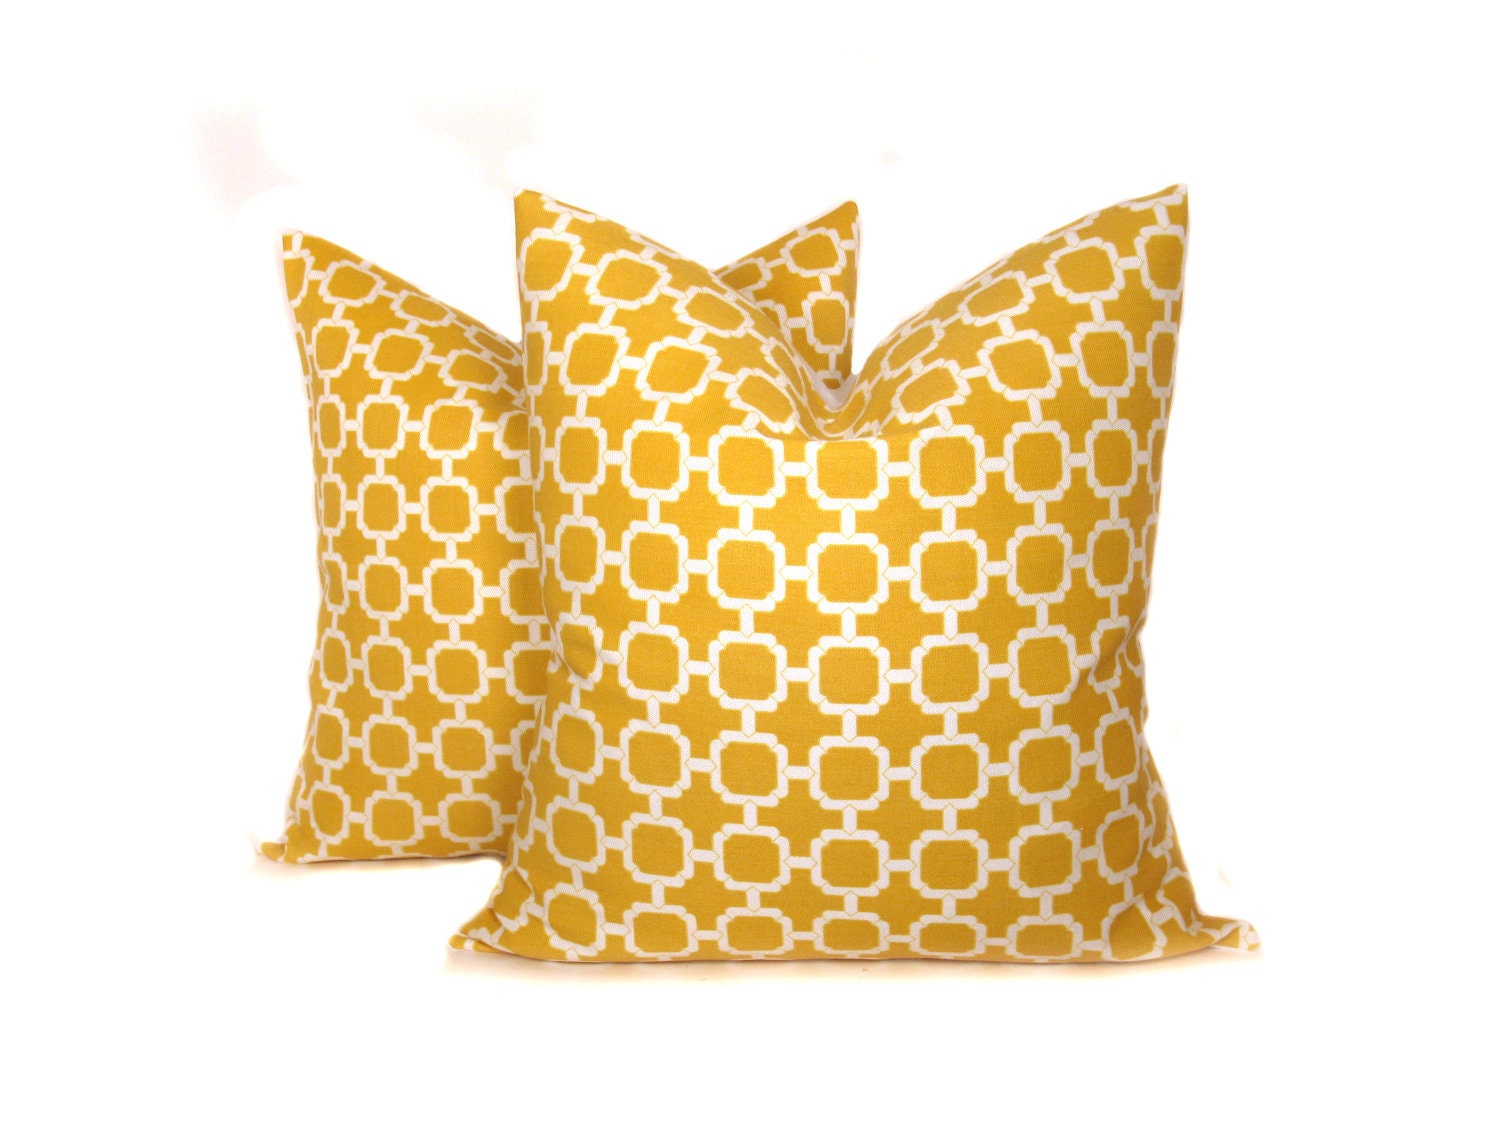 Yellow Down Throw Pillows : Yellow Pillow Decorative Throw Pillows 20 x 20 by EastAndNest